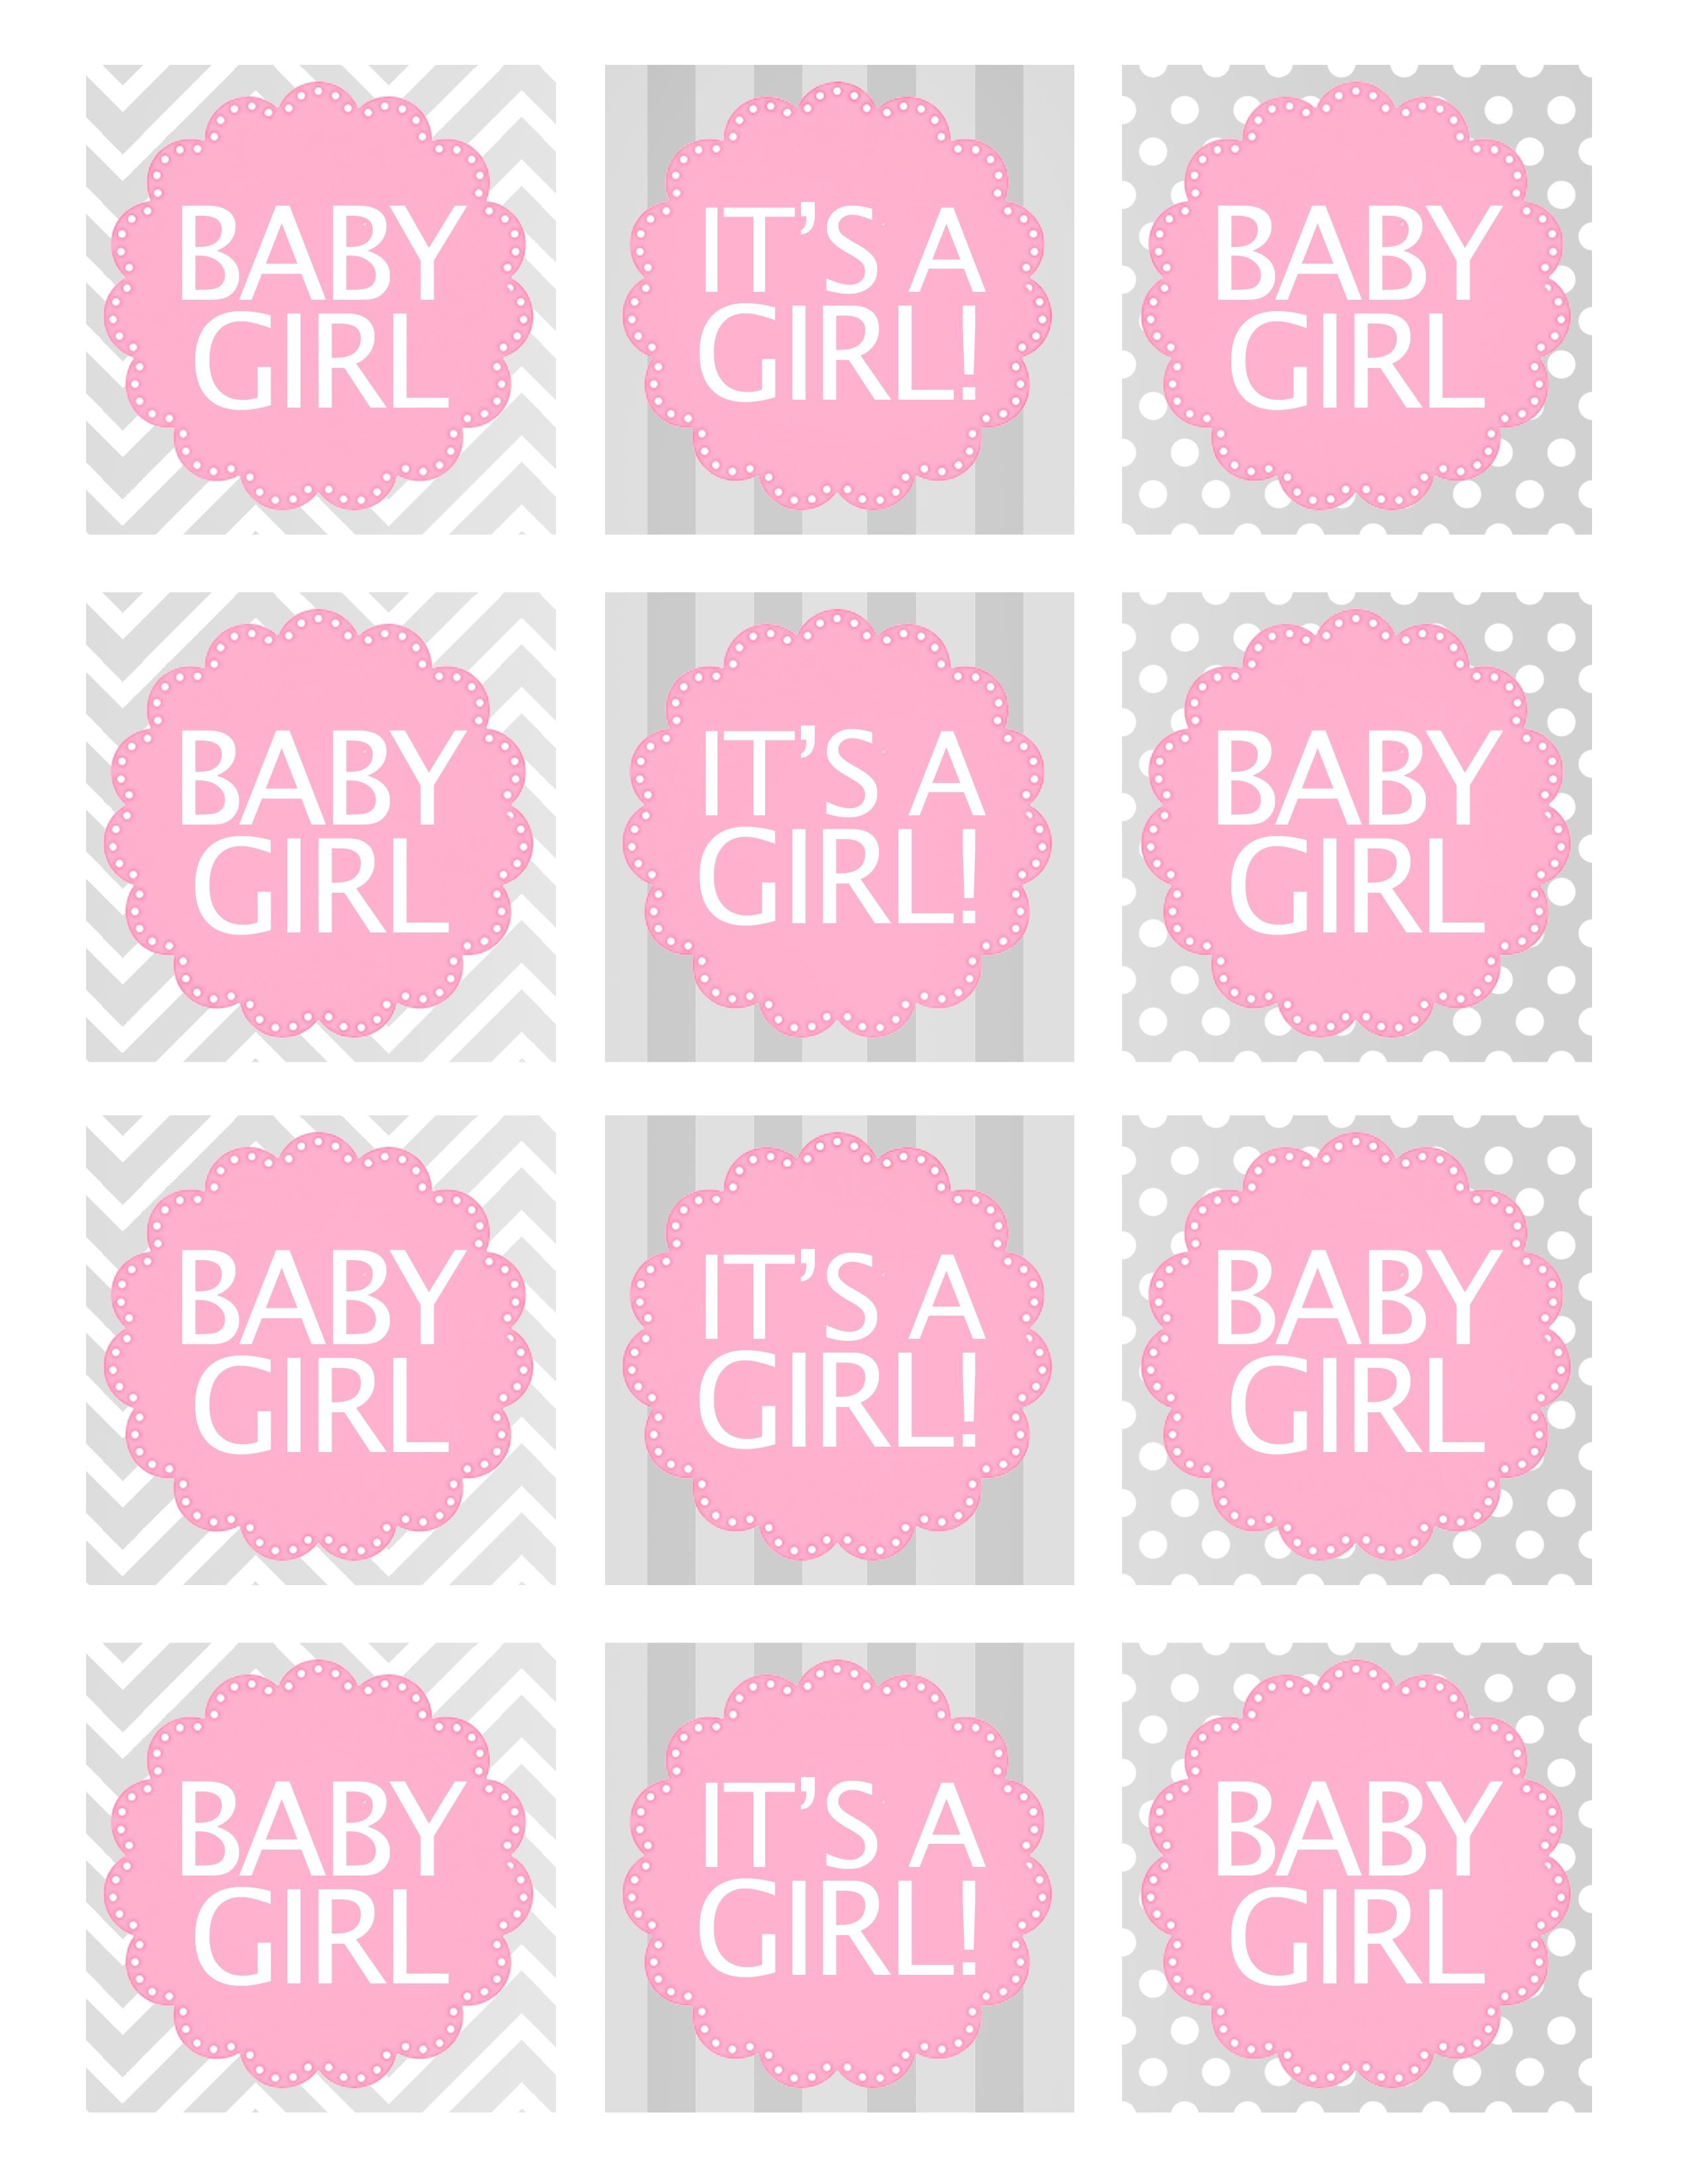 Baby Girl Shower Free Printables   Baby Shower Ideas   Baby Shower - Free Printable Baby Shower Favor Tags